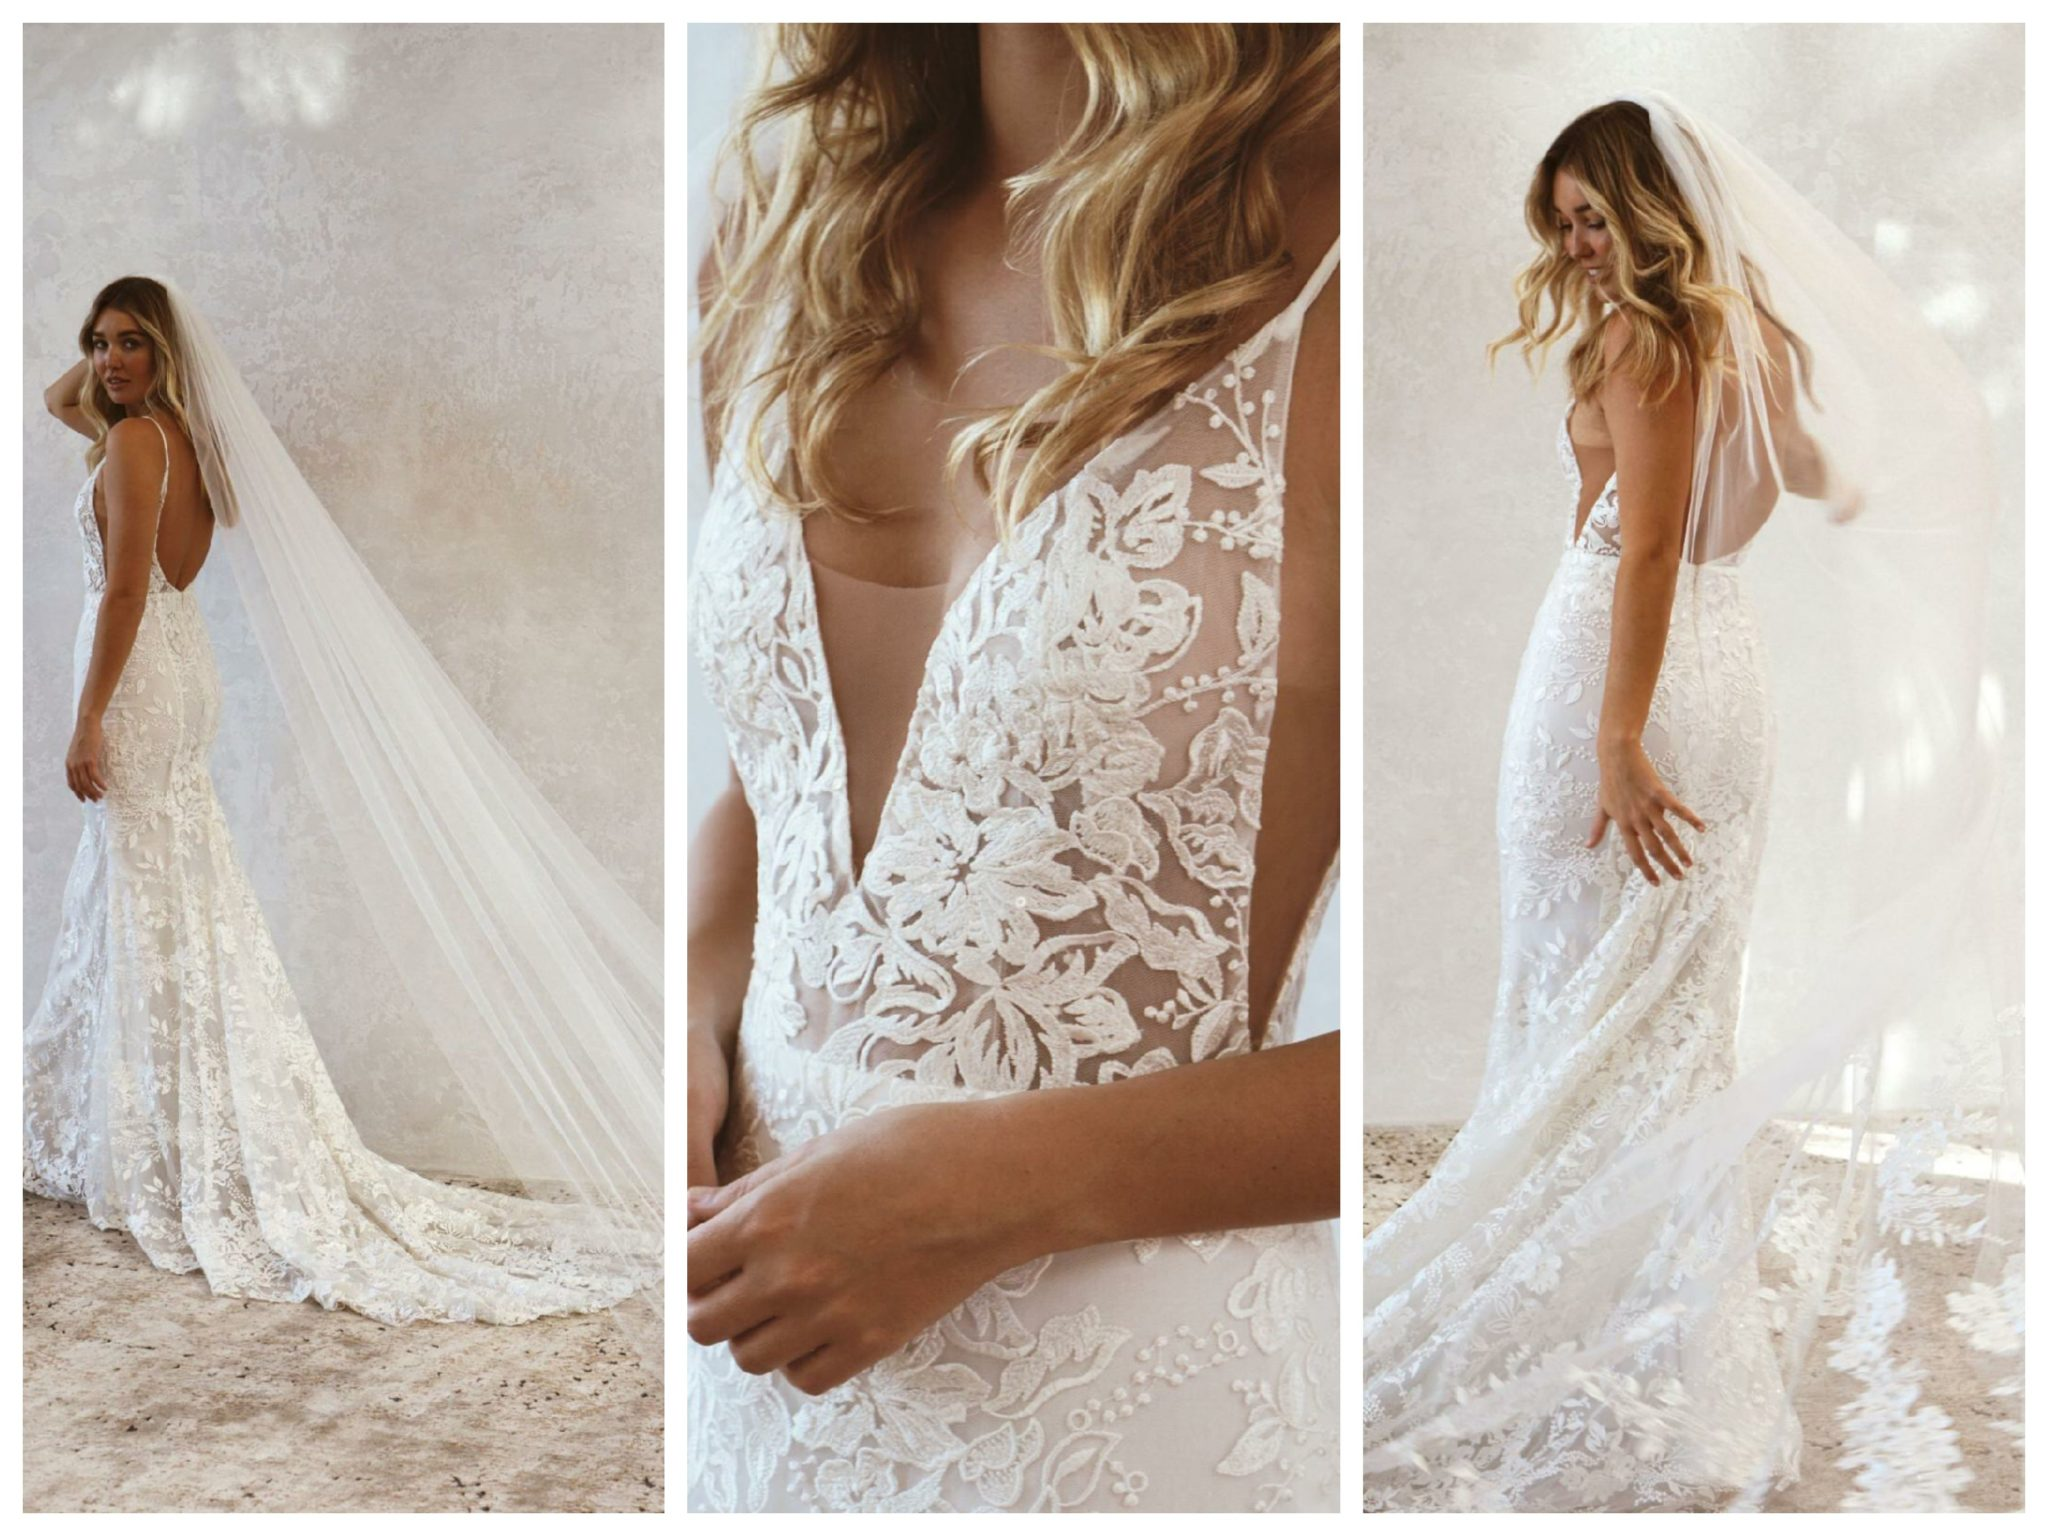 Wedding dresses for broad shoulders by top Los Angeles bridal shop, Love and Lace Bridal Salon: Emmy Mae Bridal's Peony